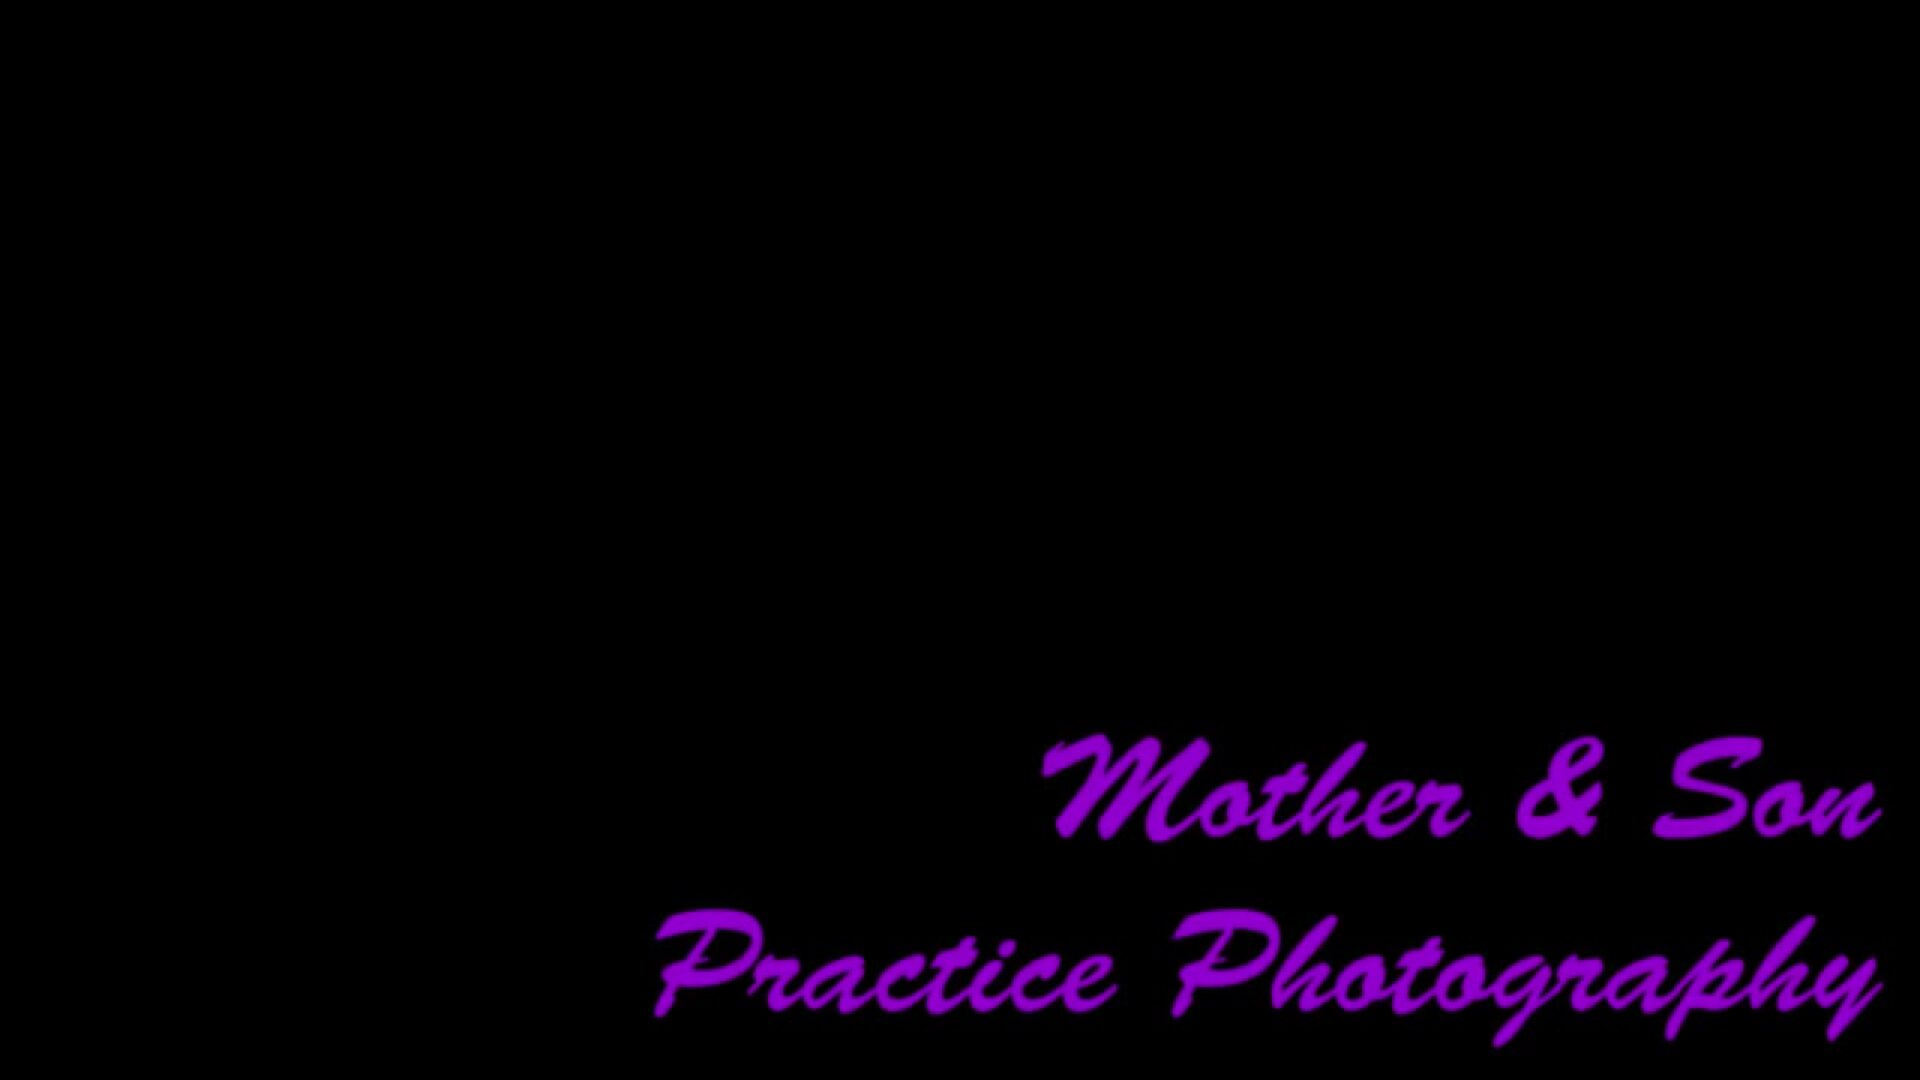 Mother & Son Practice Photography - Brianna Beach - Mom Comes First - Preview